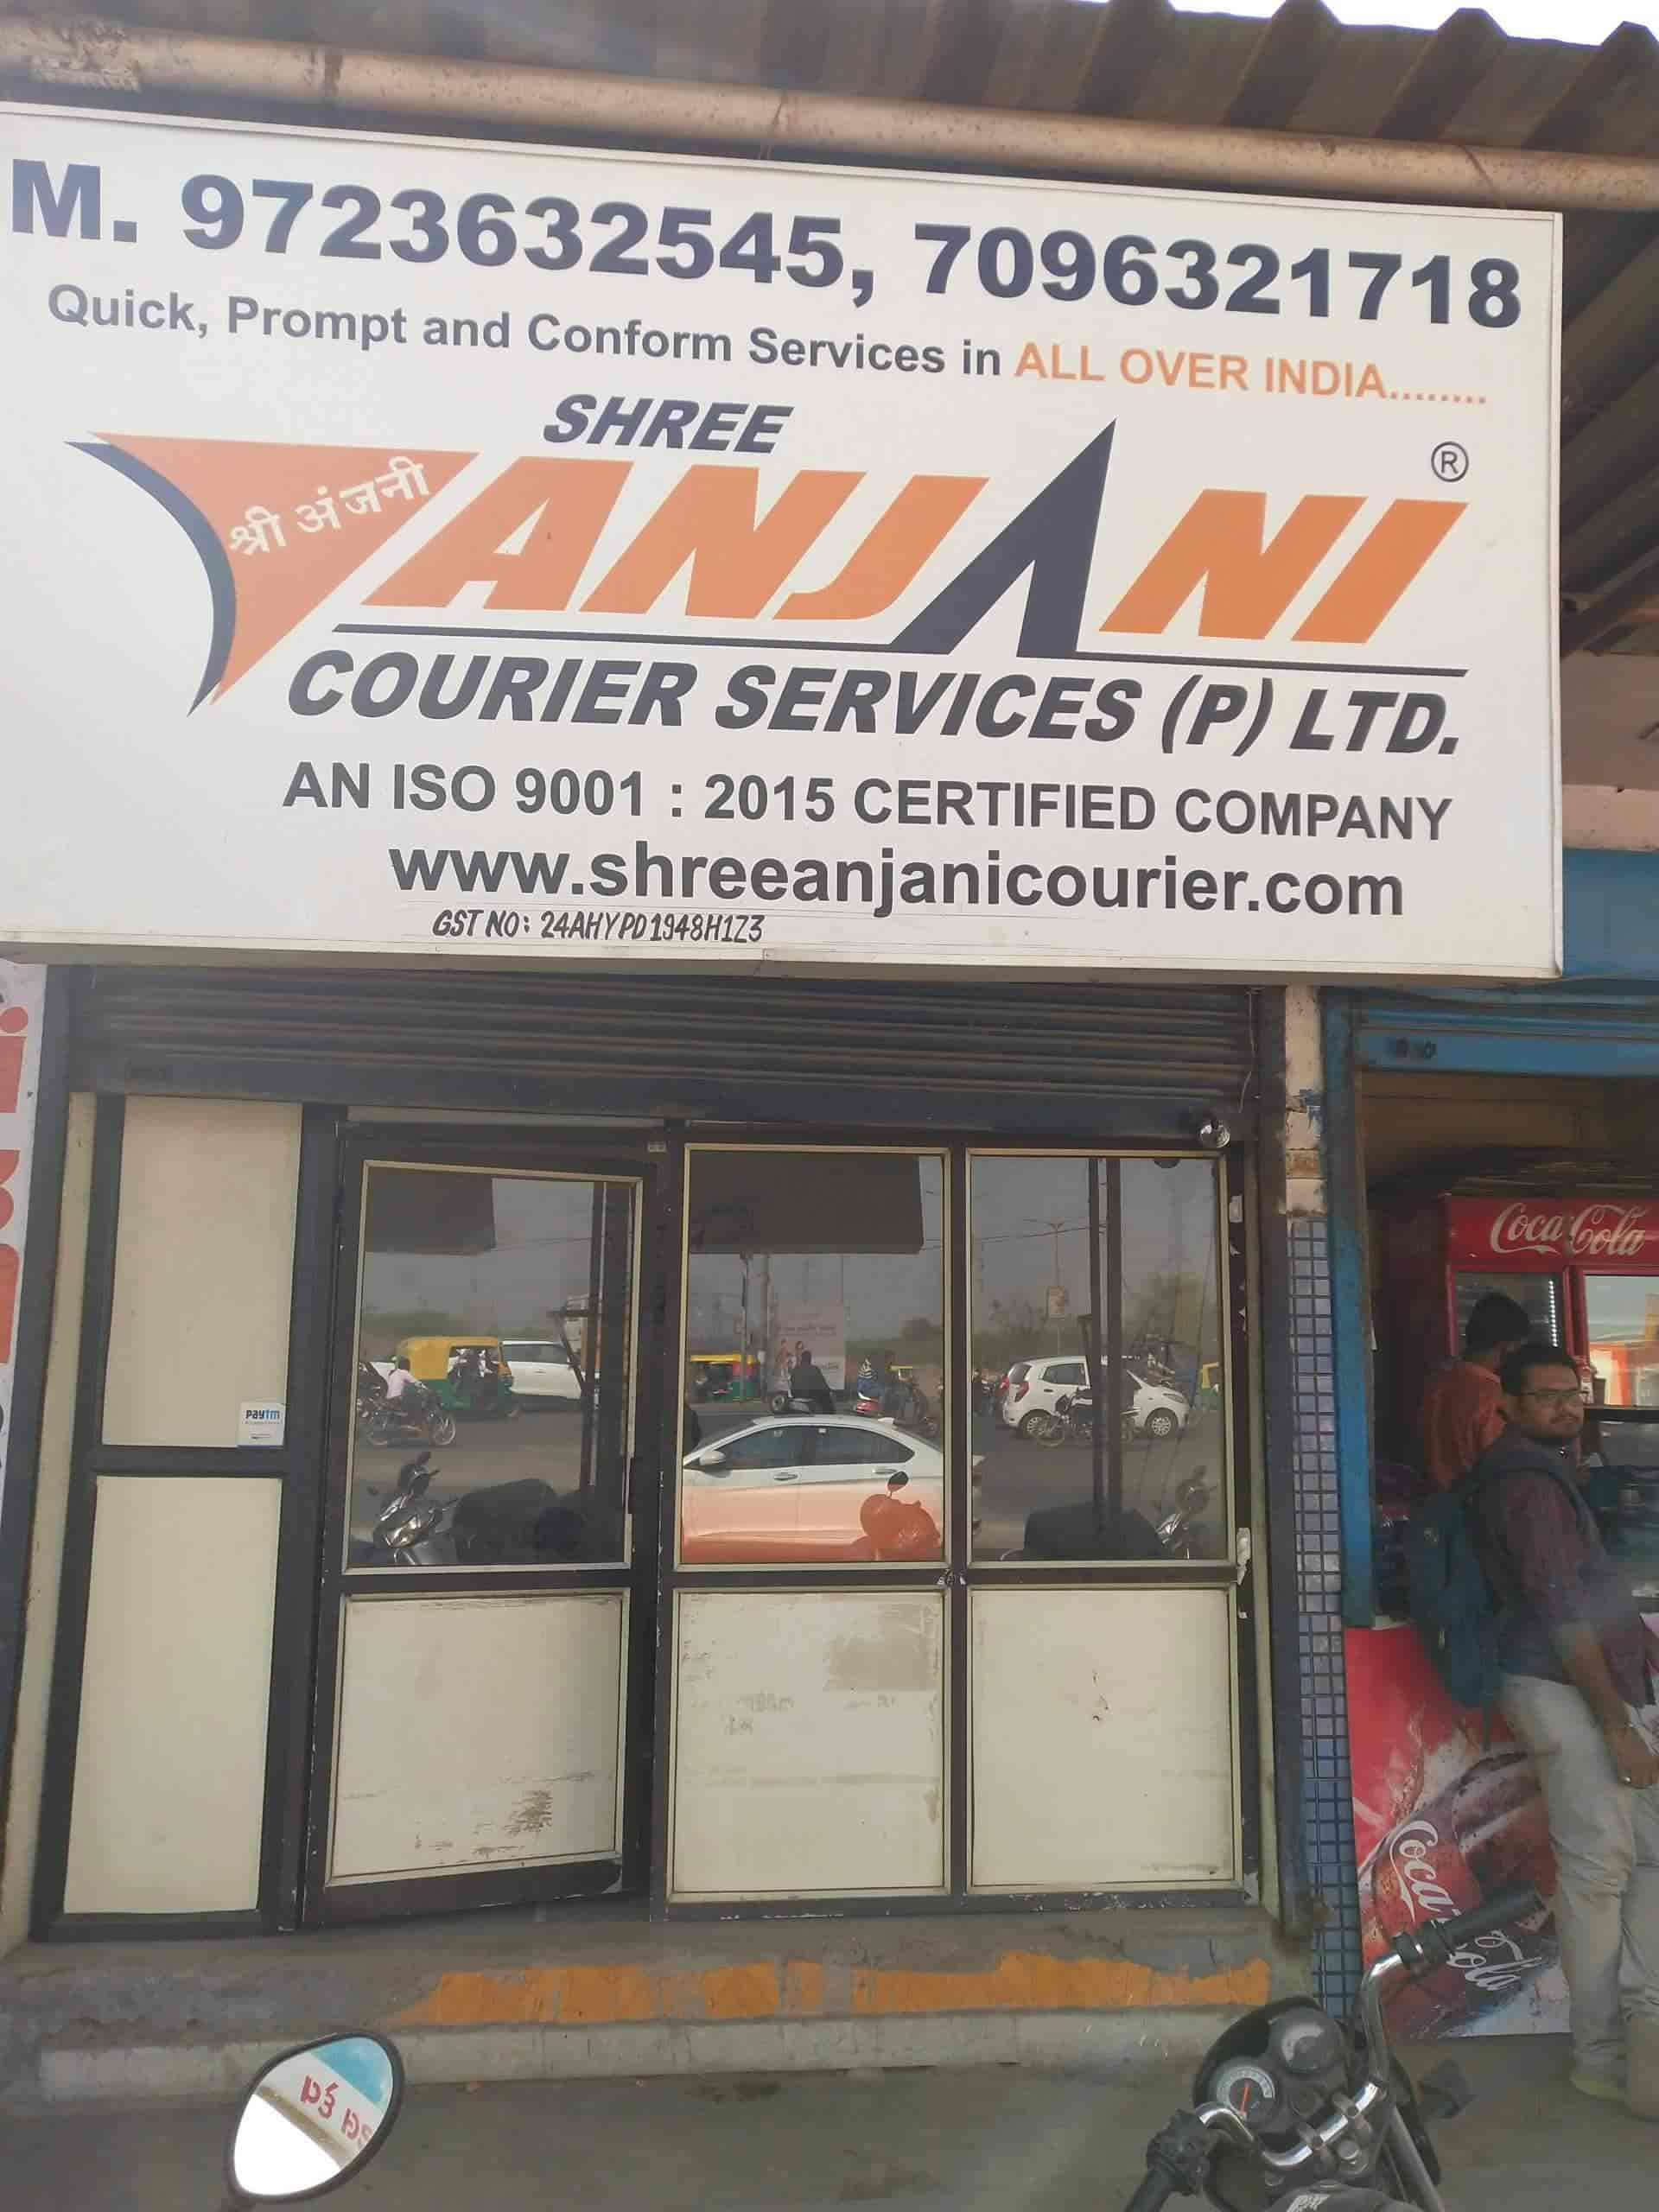 Shree Anjani Courier Services Pvt Ltd Piplaj Courier Services In Ahmedabad Justdial